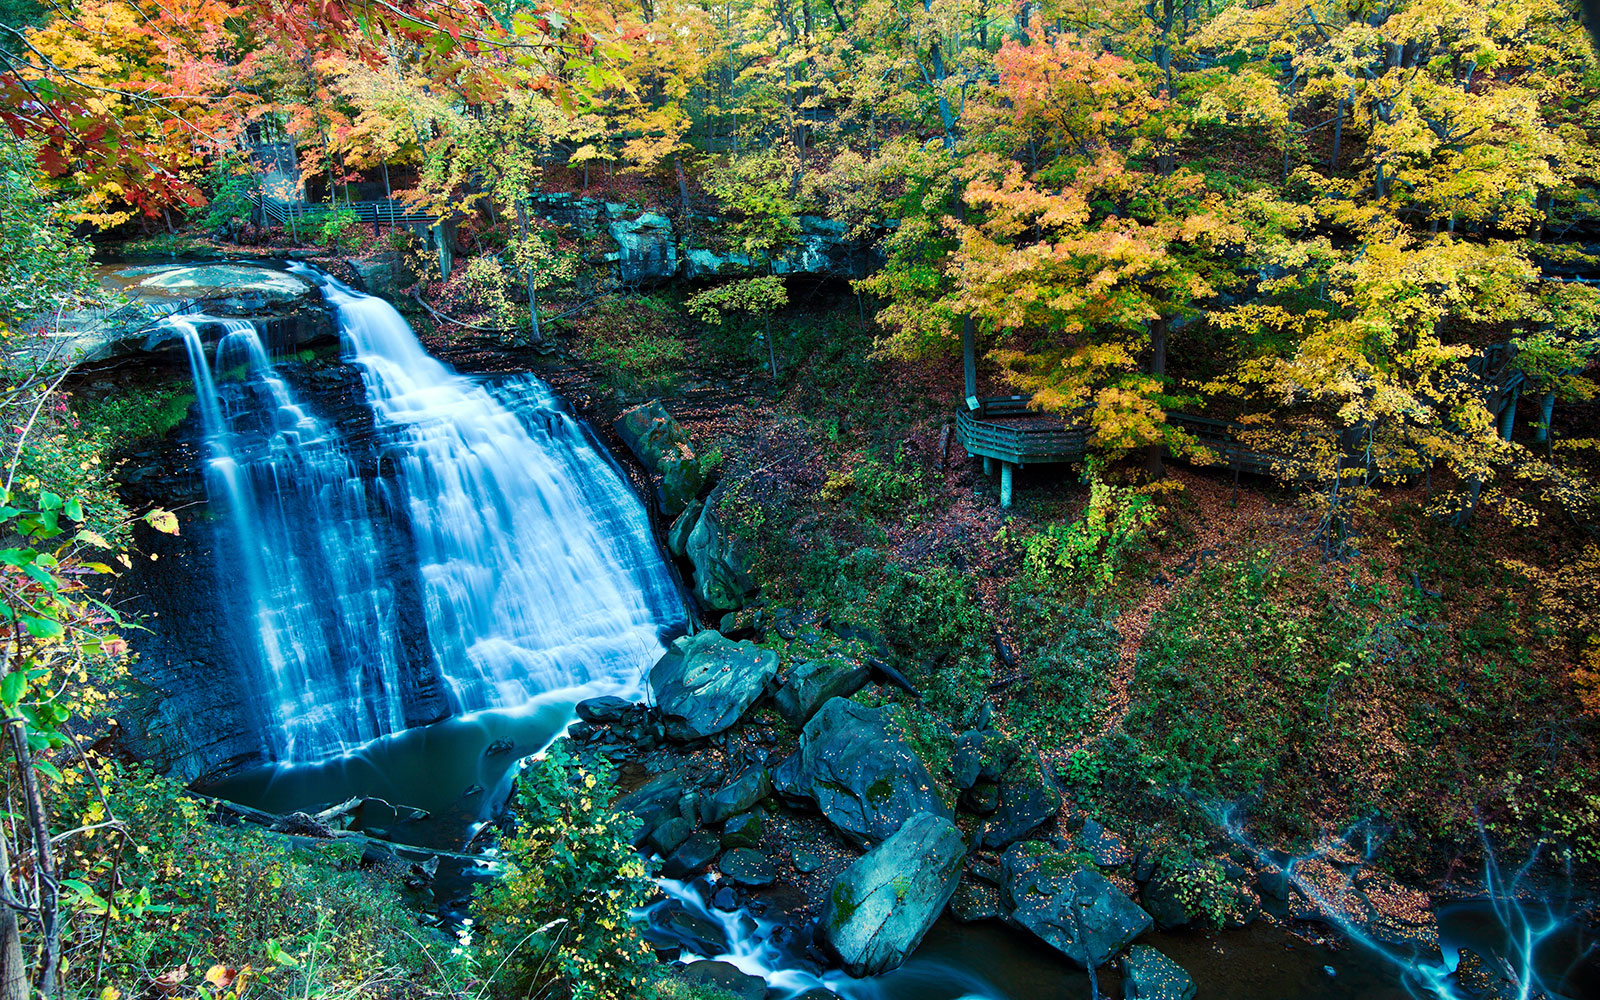 Cuyahoga Valley National Park in Peninsula, Ohio